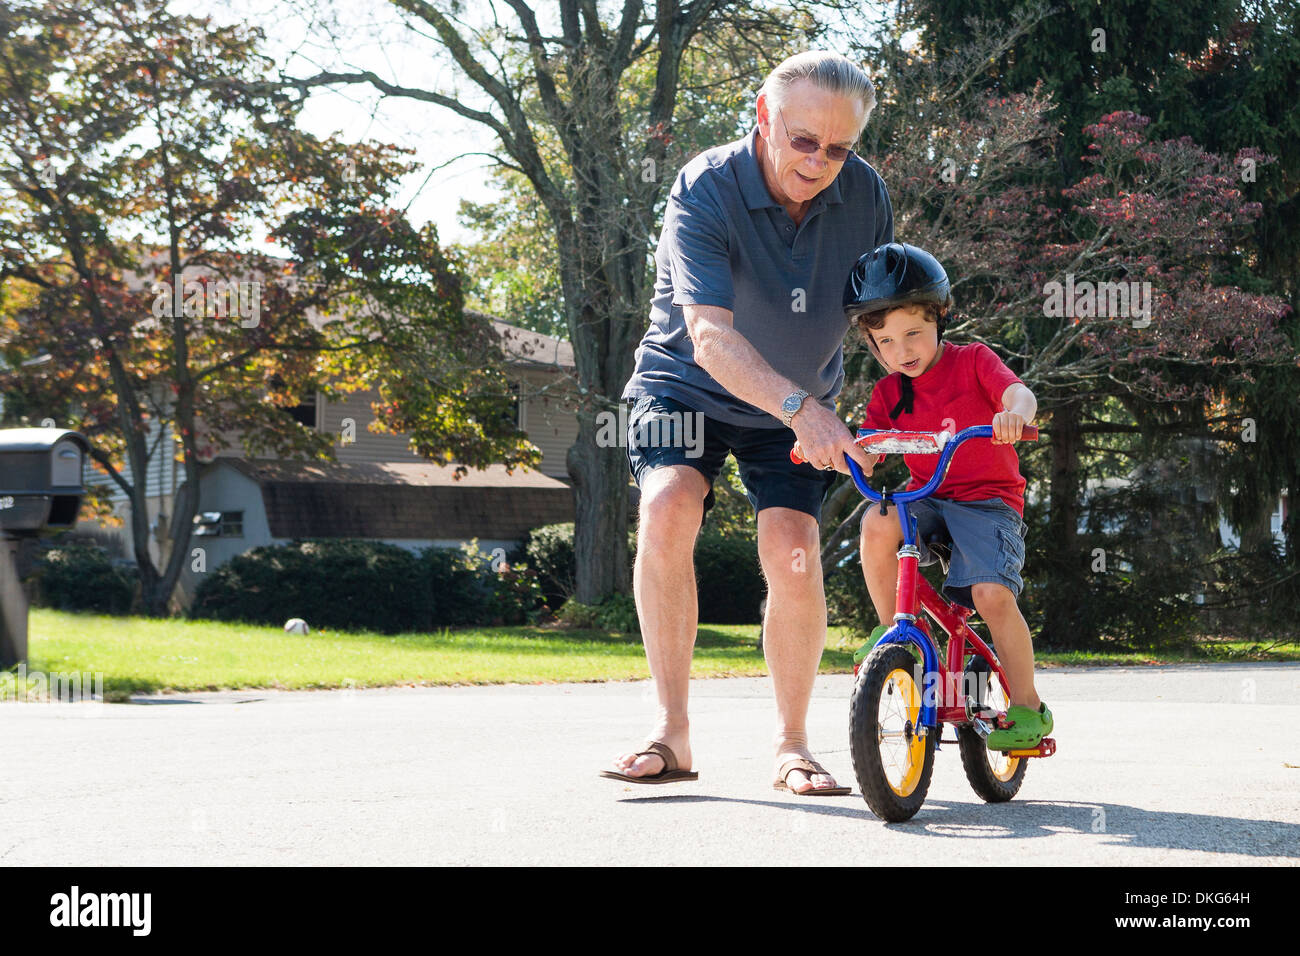 Grandfather encouraging young boy to ride bicycle - Stock Image